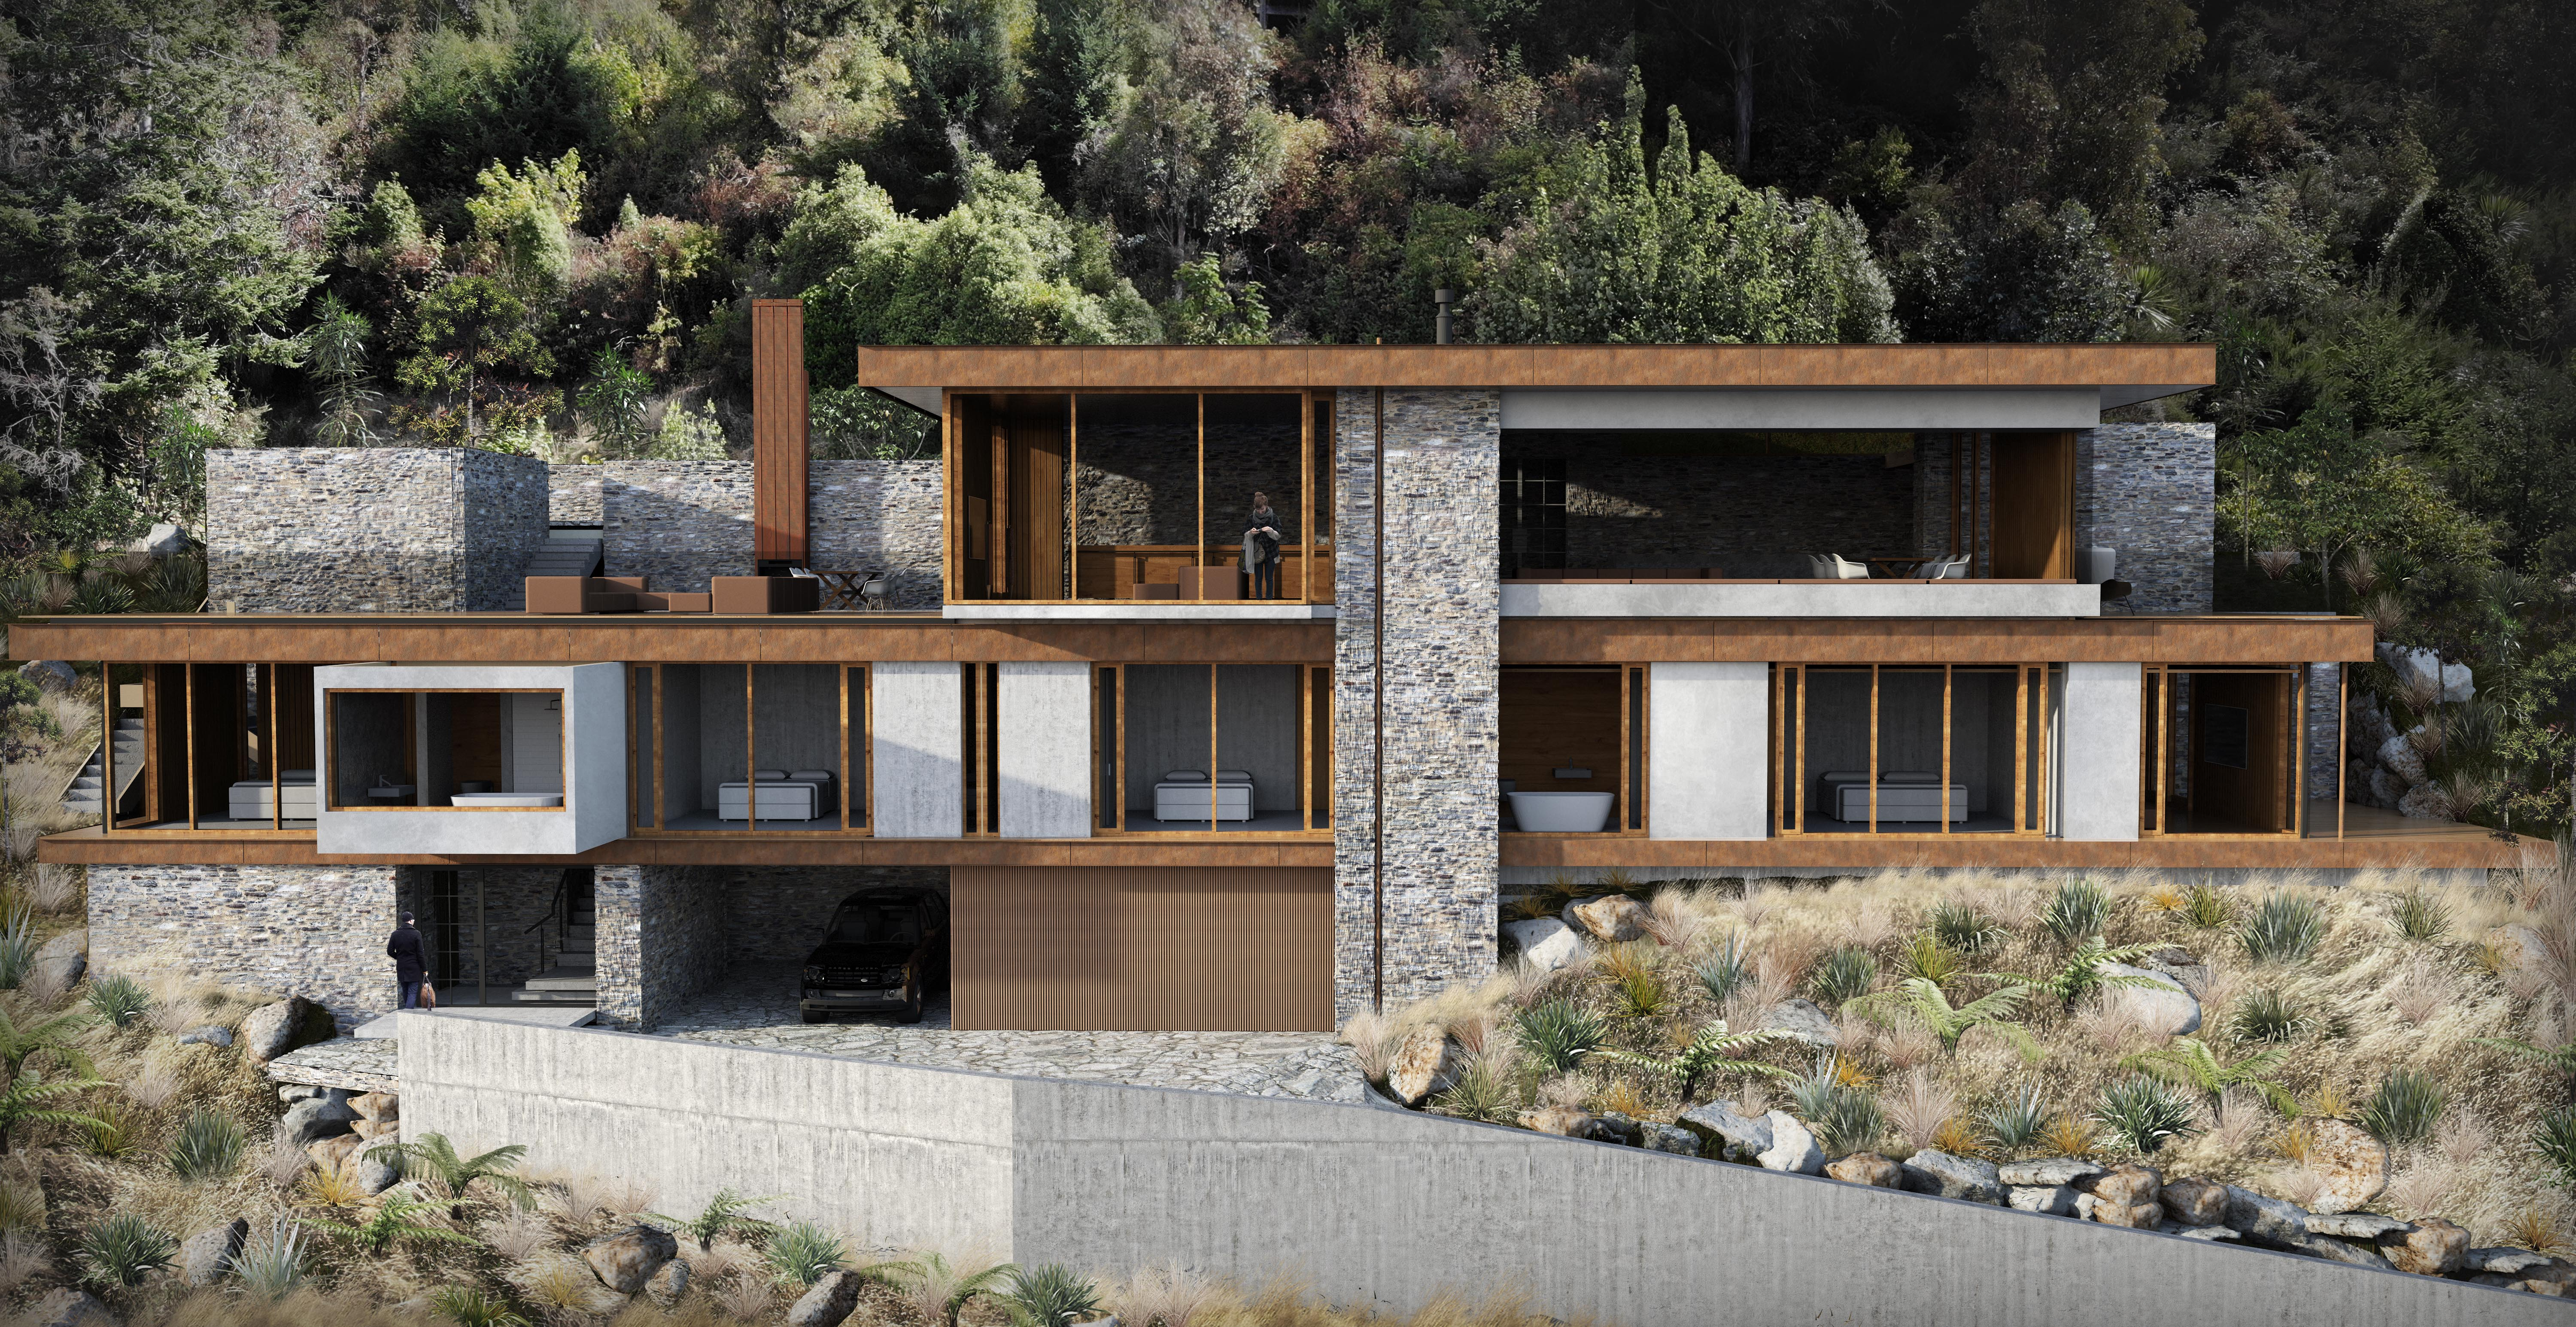 Assembly Architects Queenstown holiday house, schist stone, render, virtual reality, corten steel.